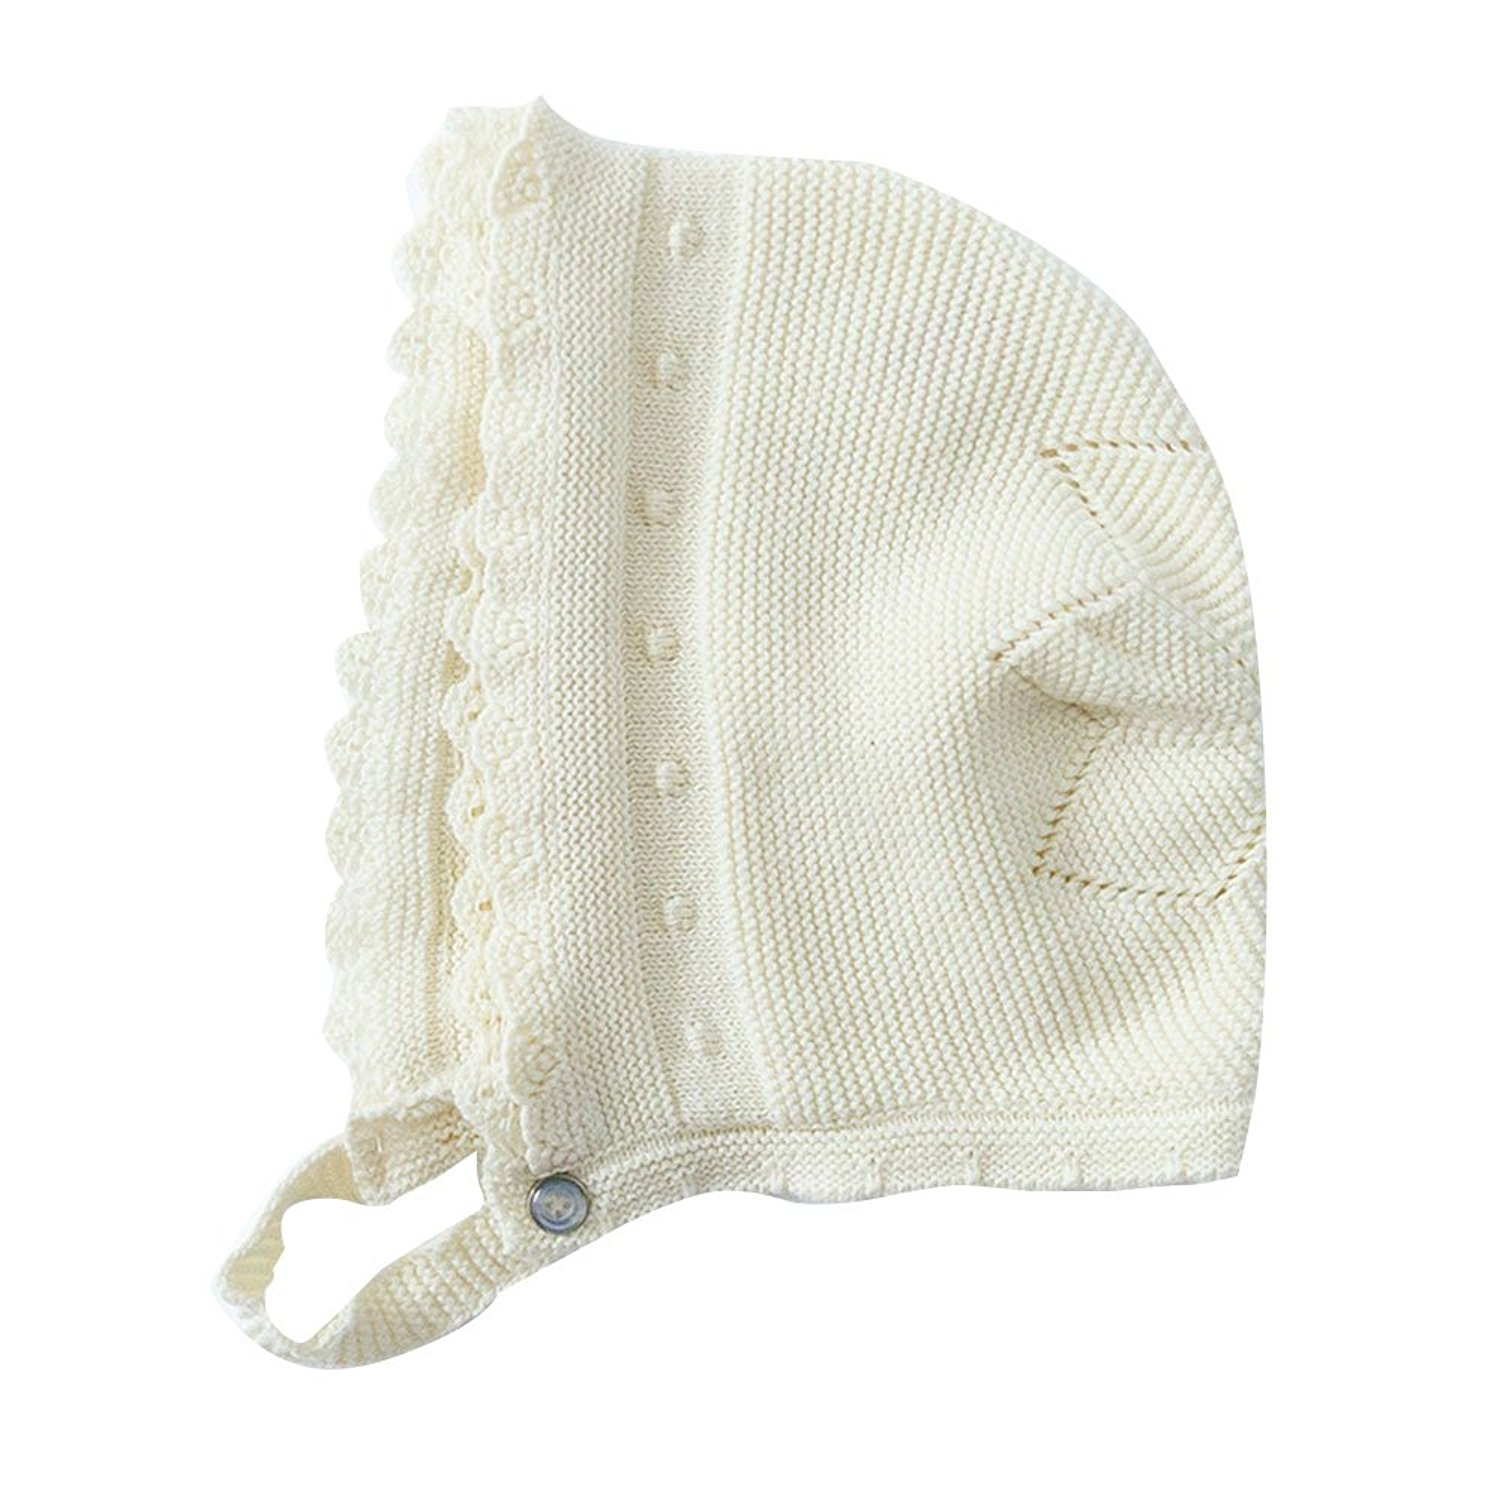 Lace Bonnet Knit Baby Hat